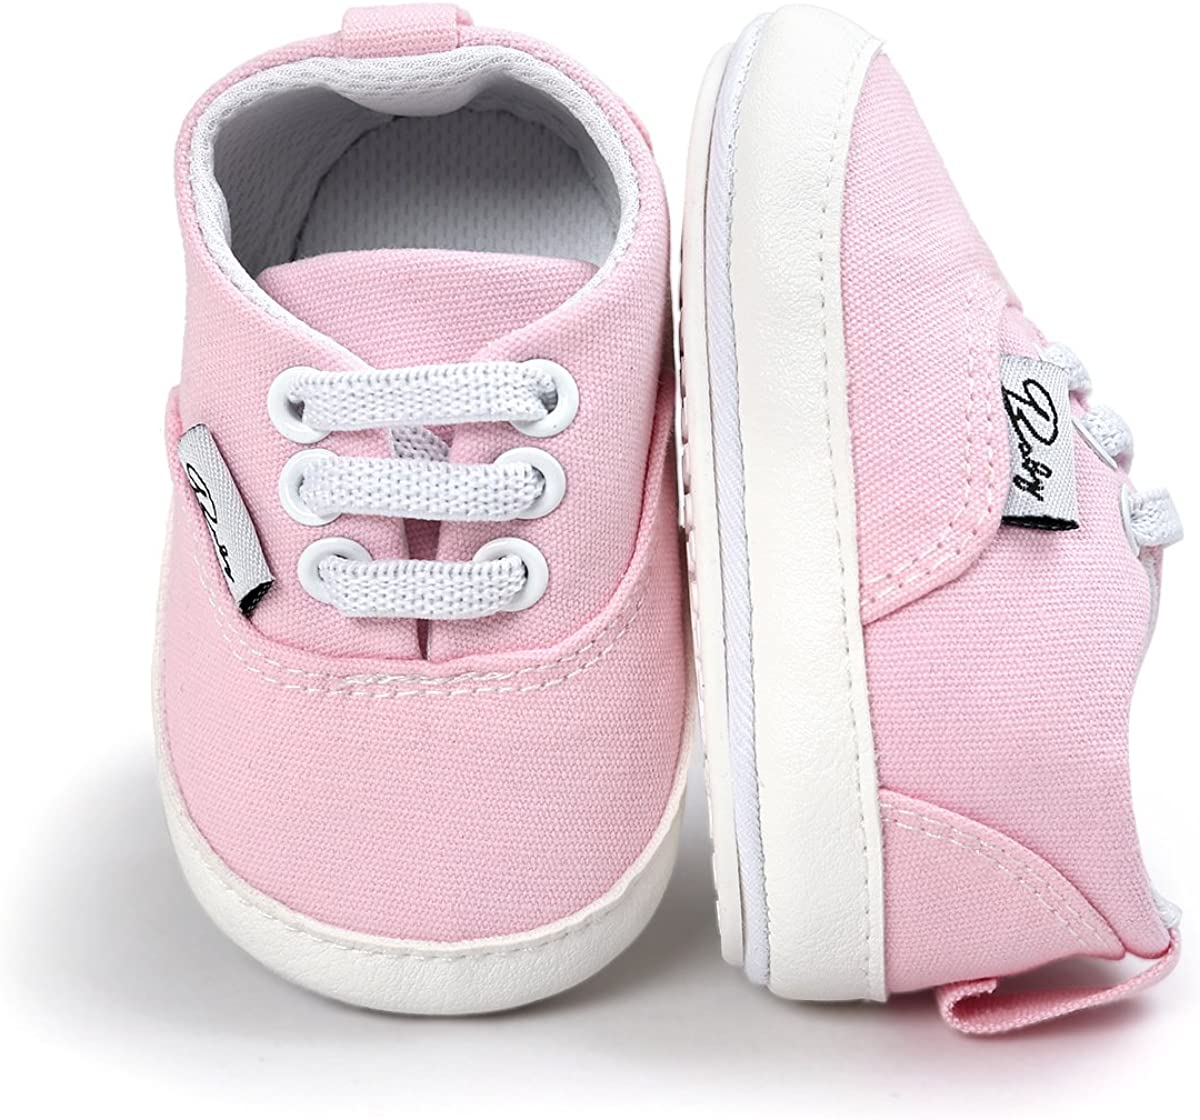 Baby Boys Girls San Antonio Mall Canvas Shoes Premium Infant Sole Snea Basic Soft Easy-to-use